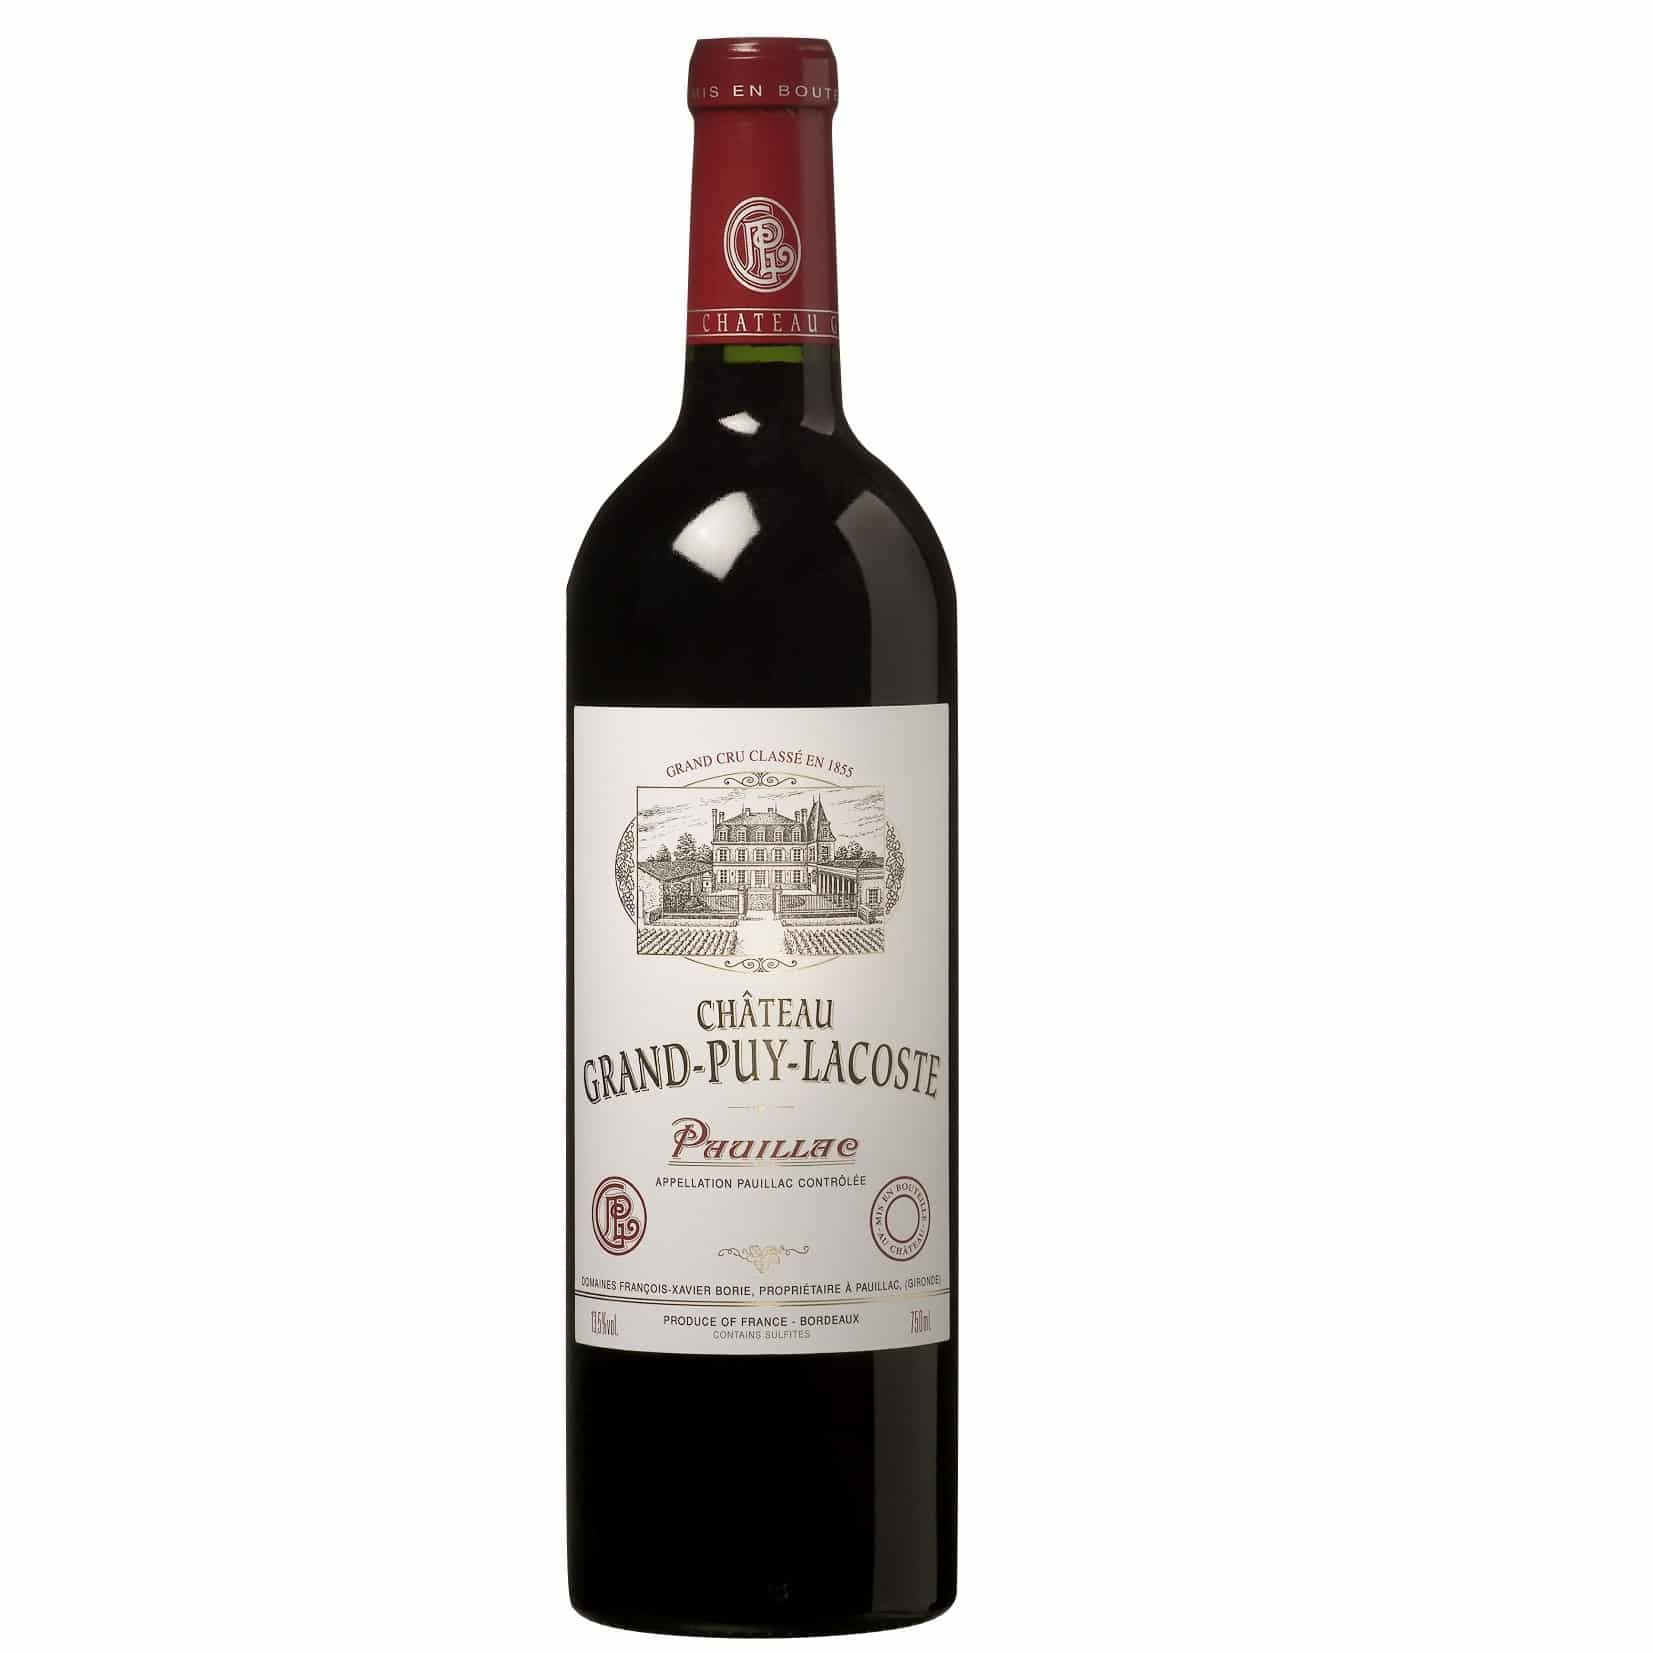 Chateau Grand-Puy Lacoste 2006